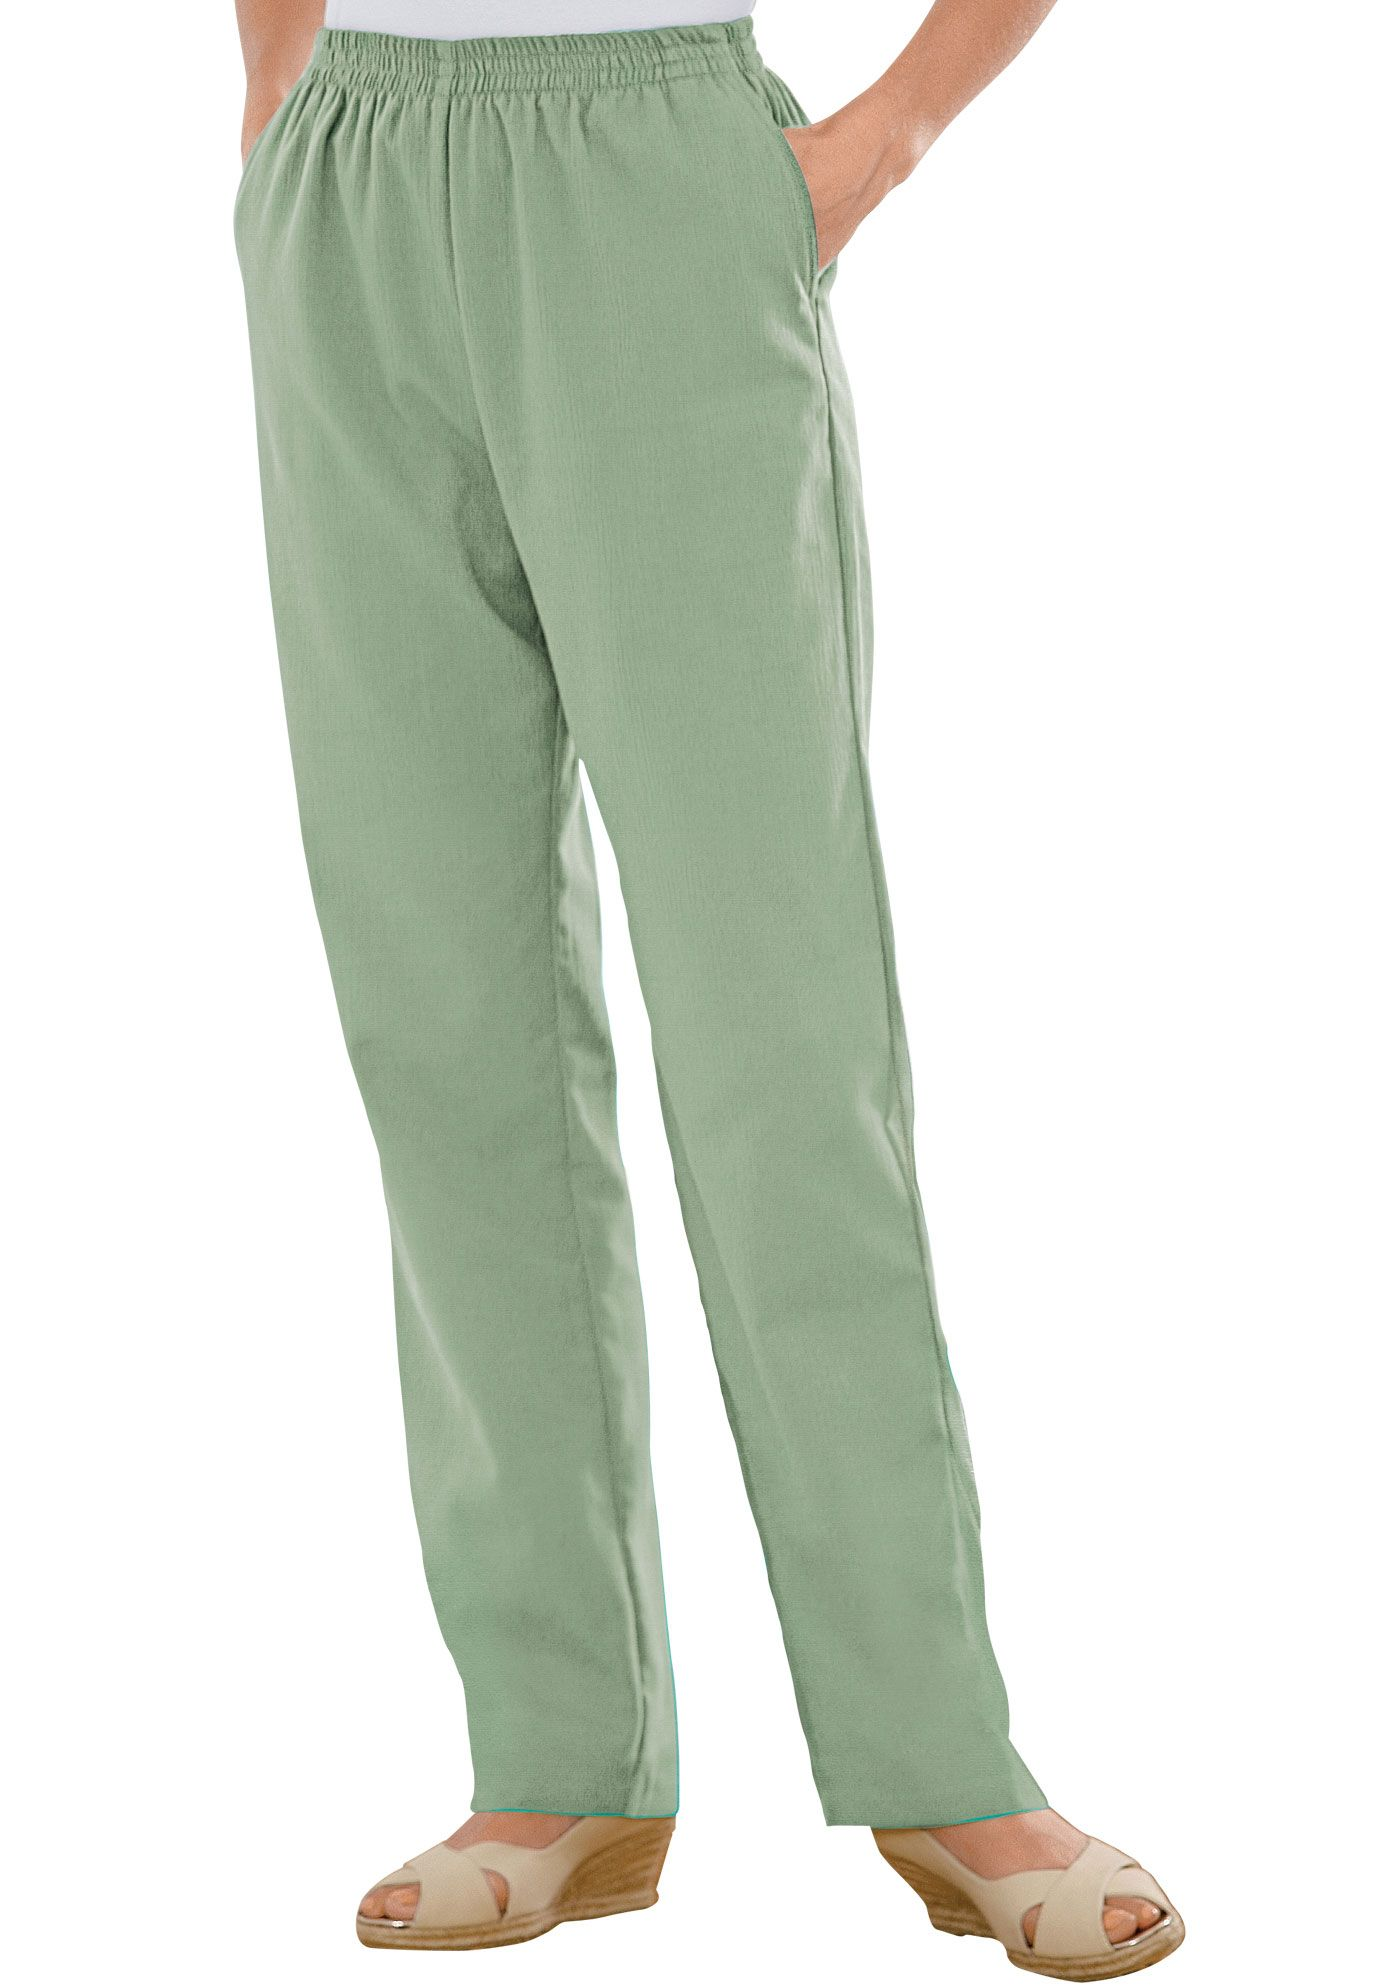 b0950c127774c Petite pants in Calcutta cloth by Only Necessities®. Petite pants in  Calcutta cloth by Only Necessities® Petite Pants